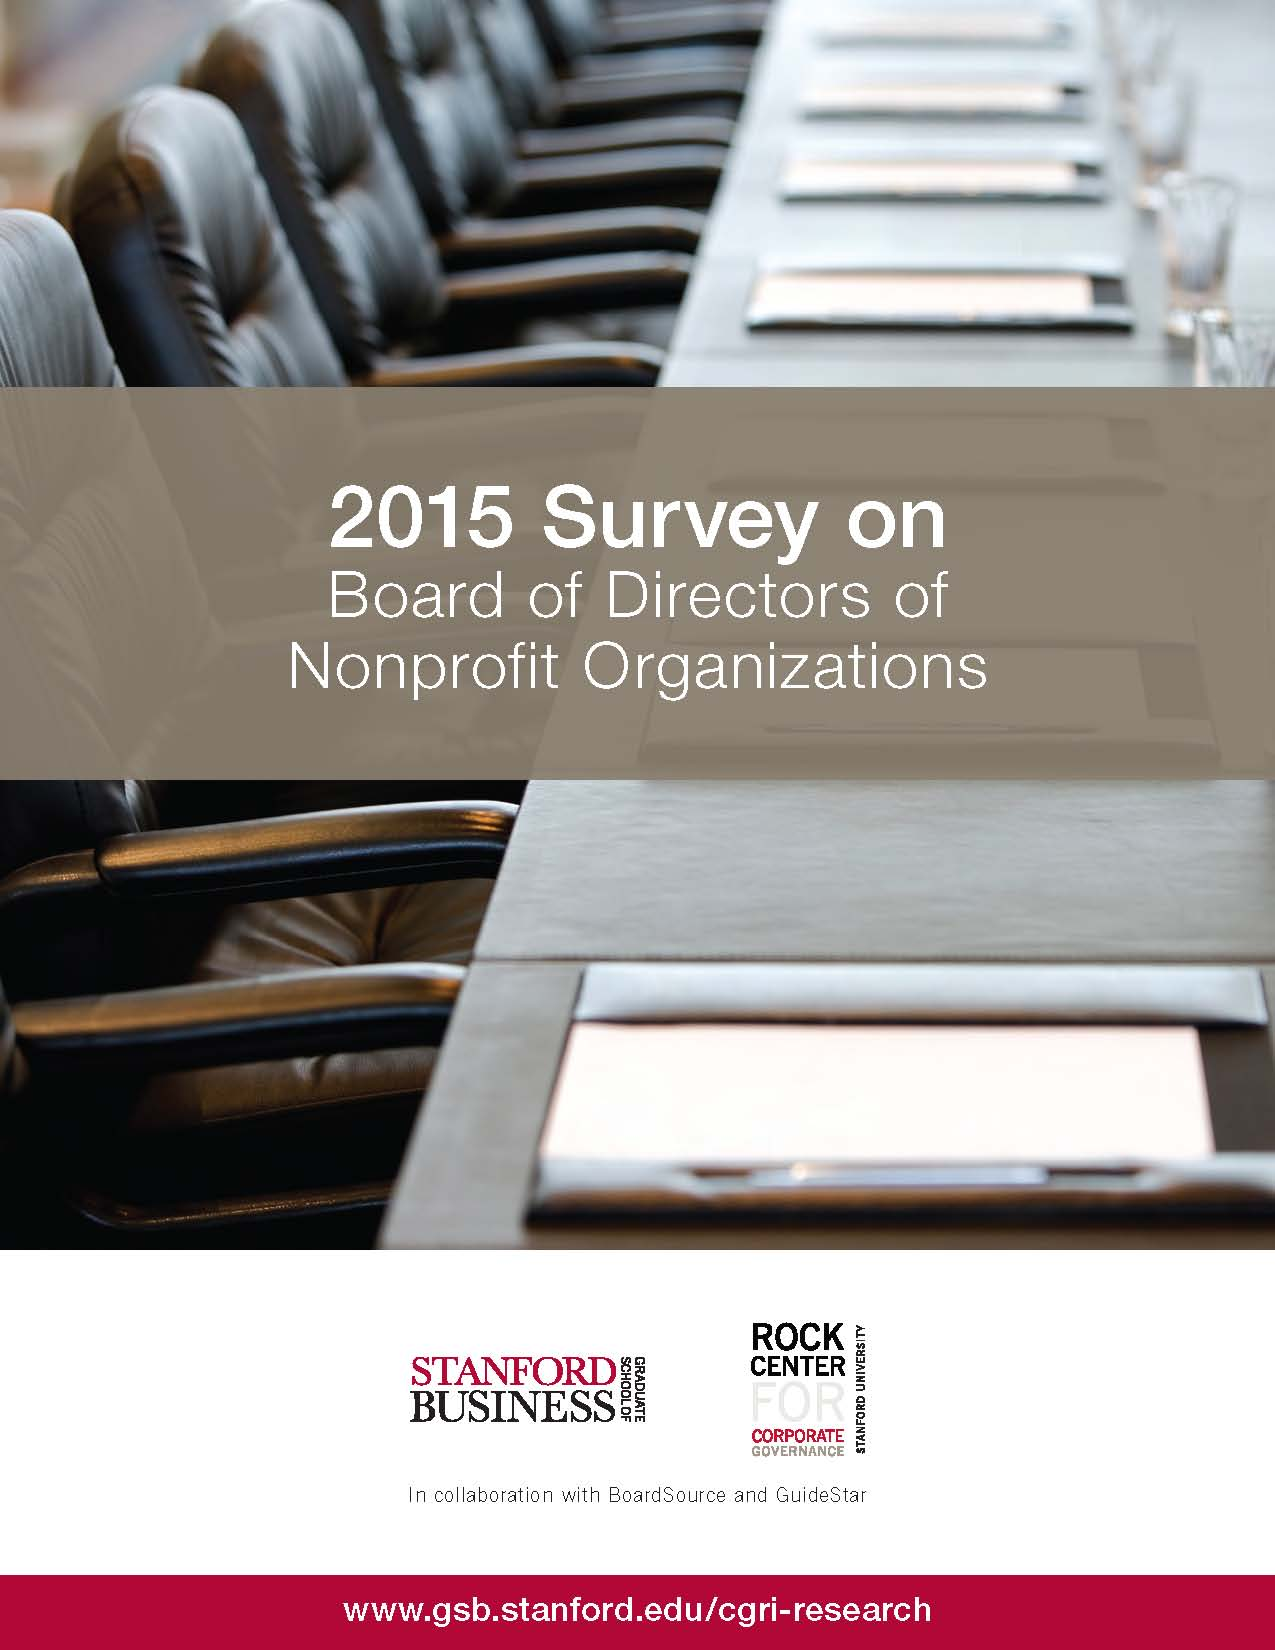 2015 Survey on Nonprofit Boards Cover